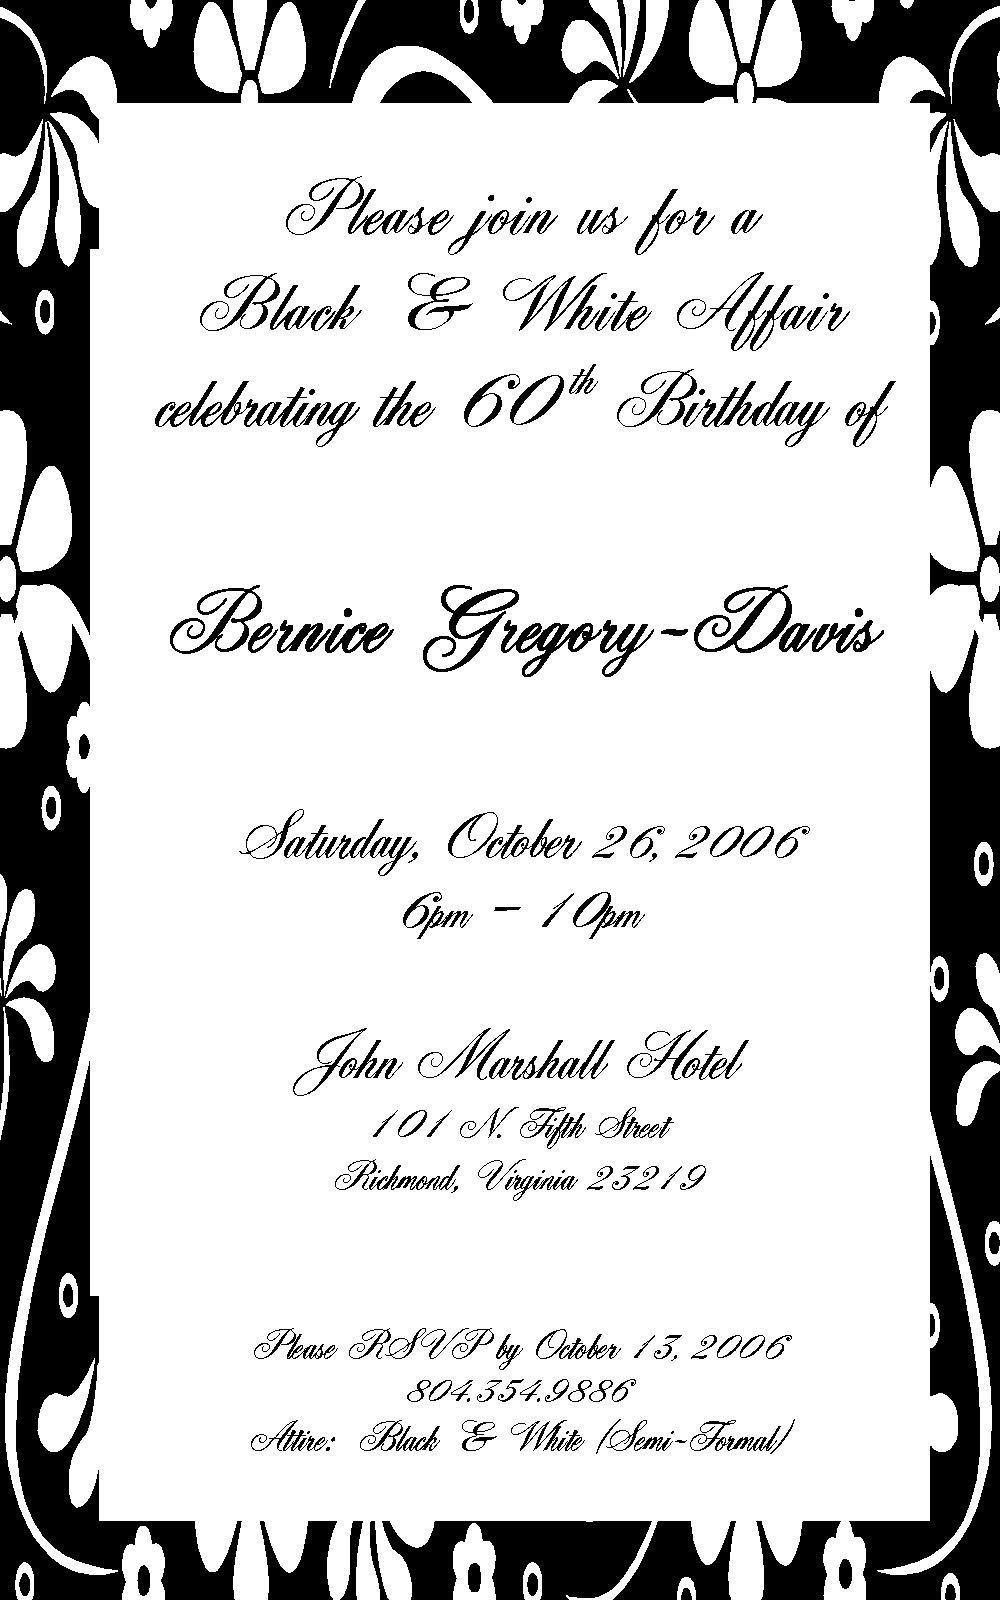 Images For Birthday Dinner Party Invitation Template